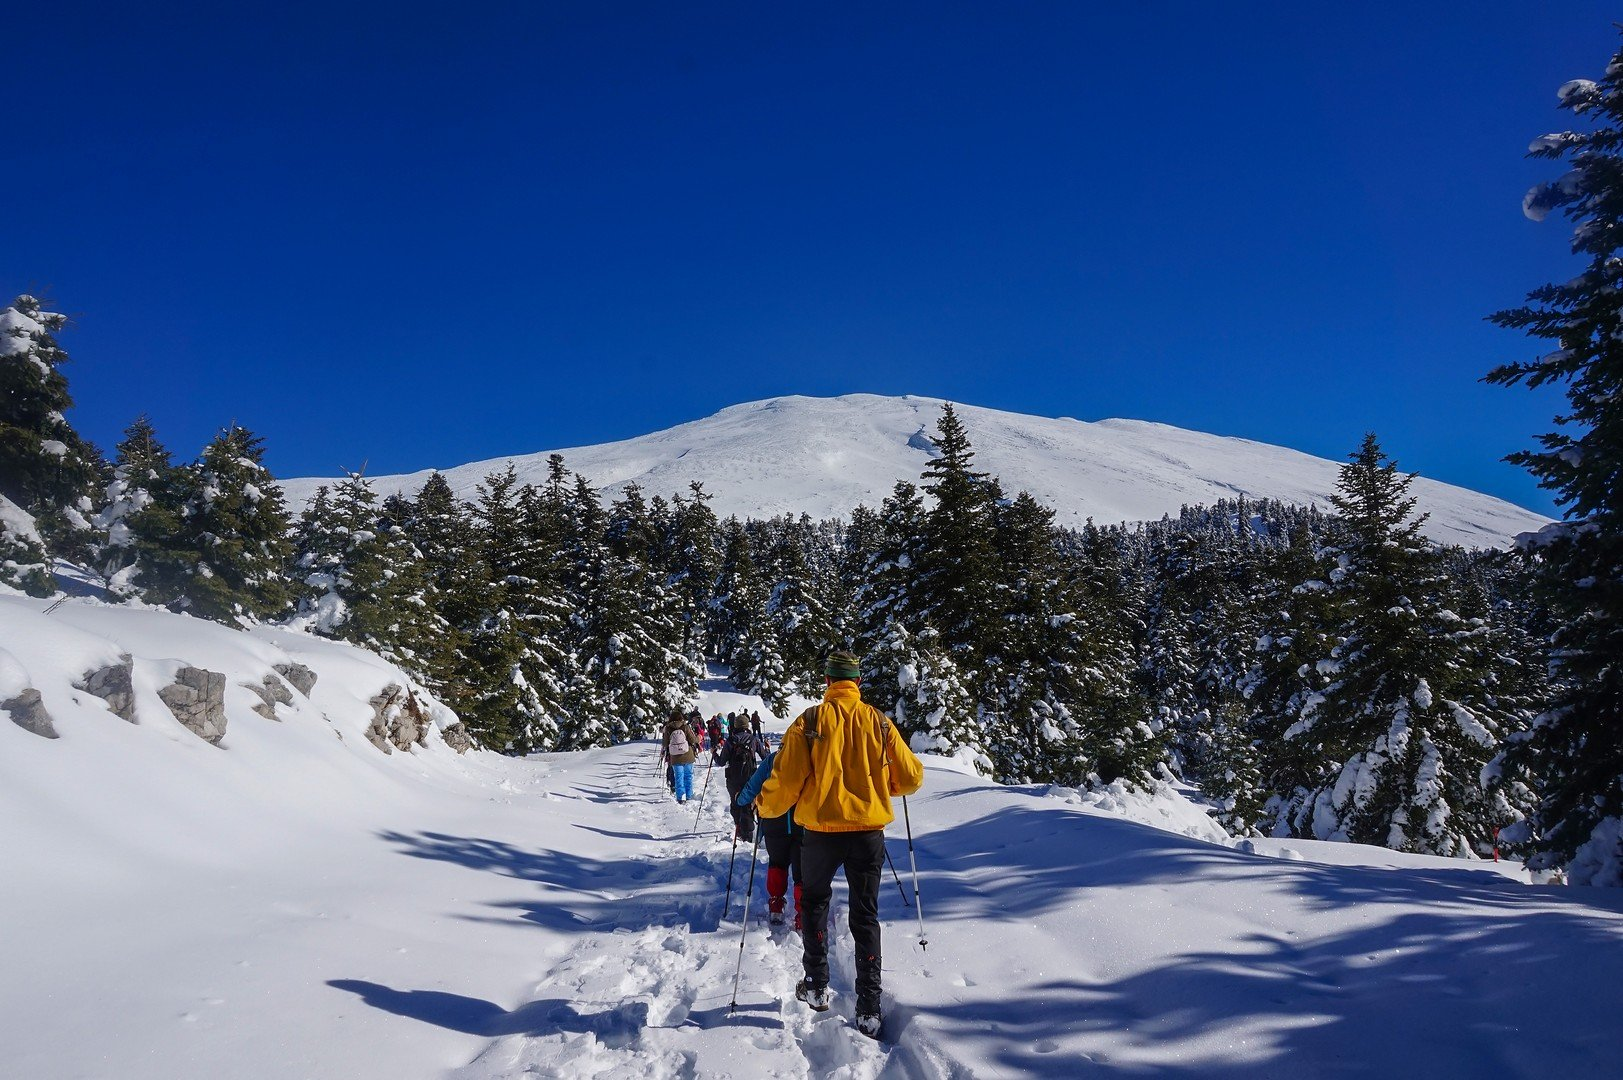 The road to Parnassus Shelter Michael Deffner Located in the southwestern slopes of Mount Parnassos at an altitude of 1825m shutterstock_585450821